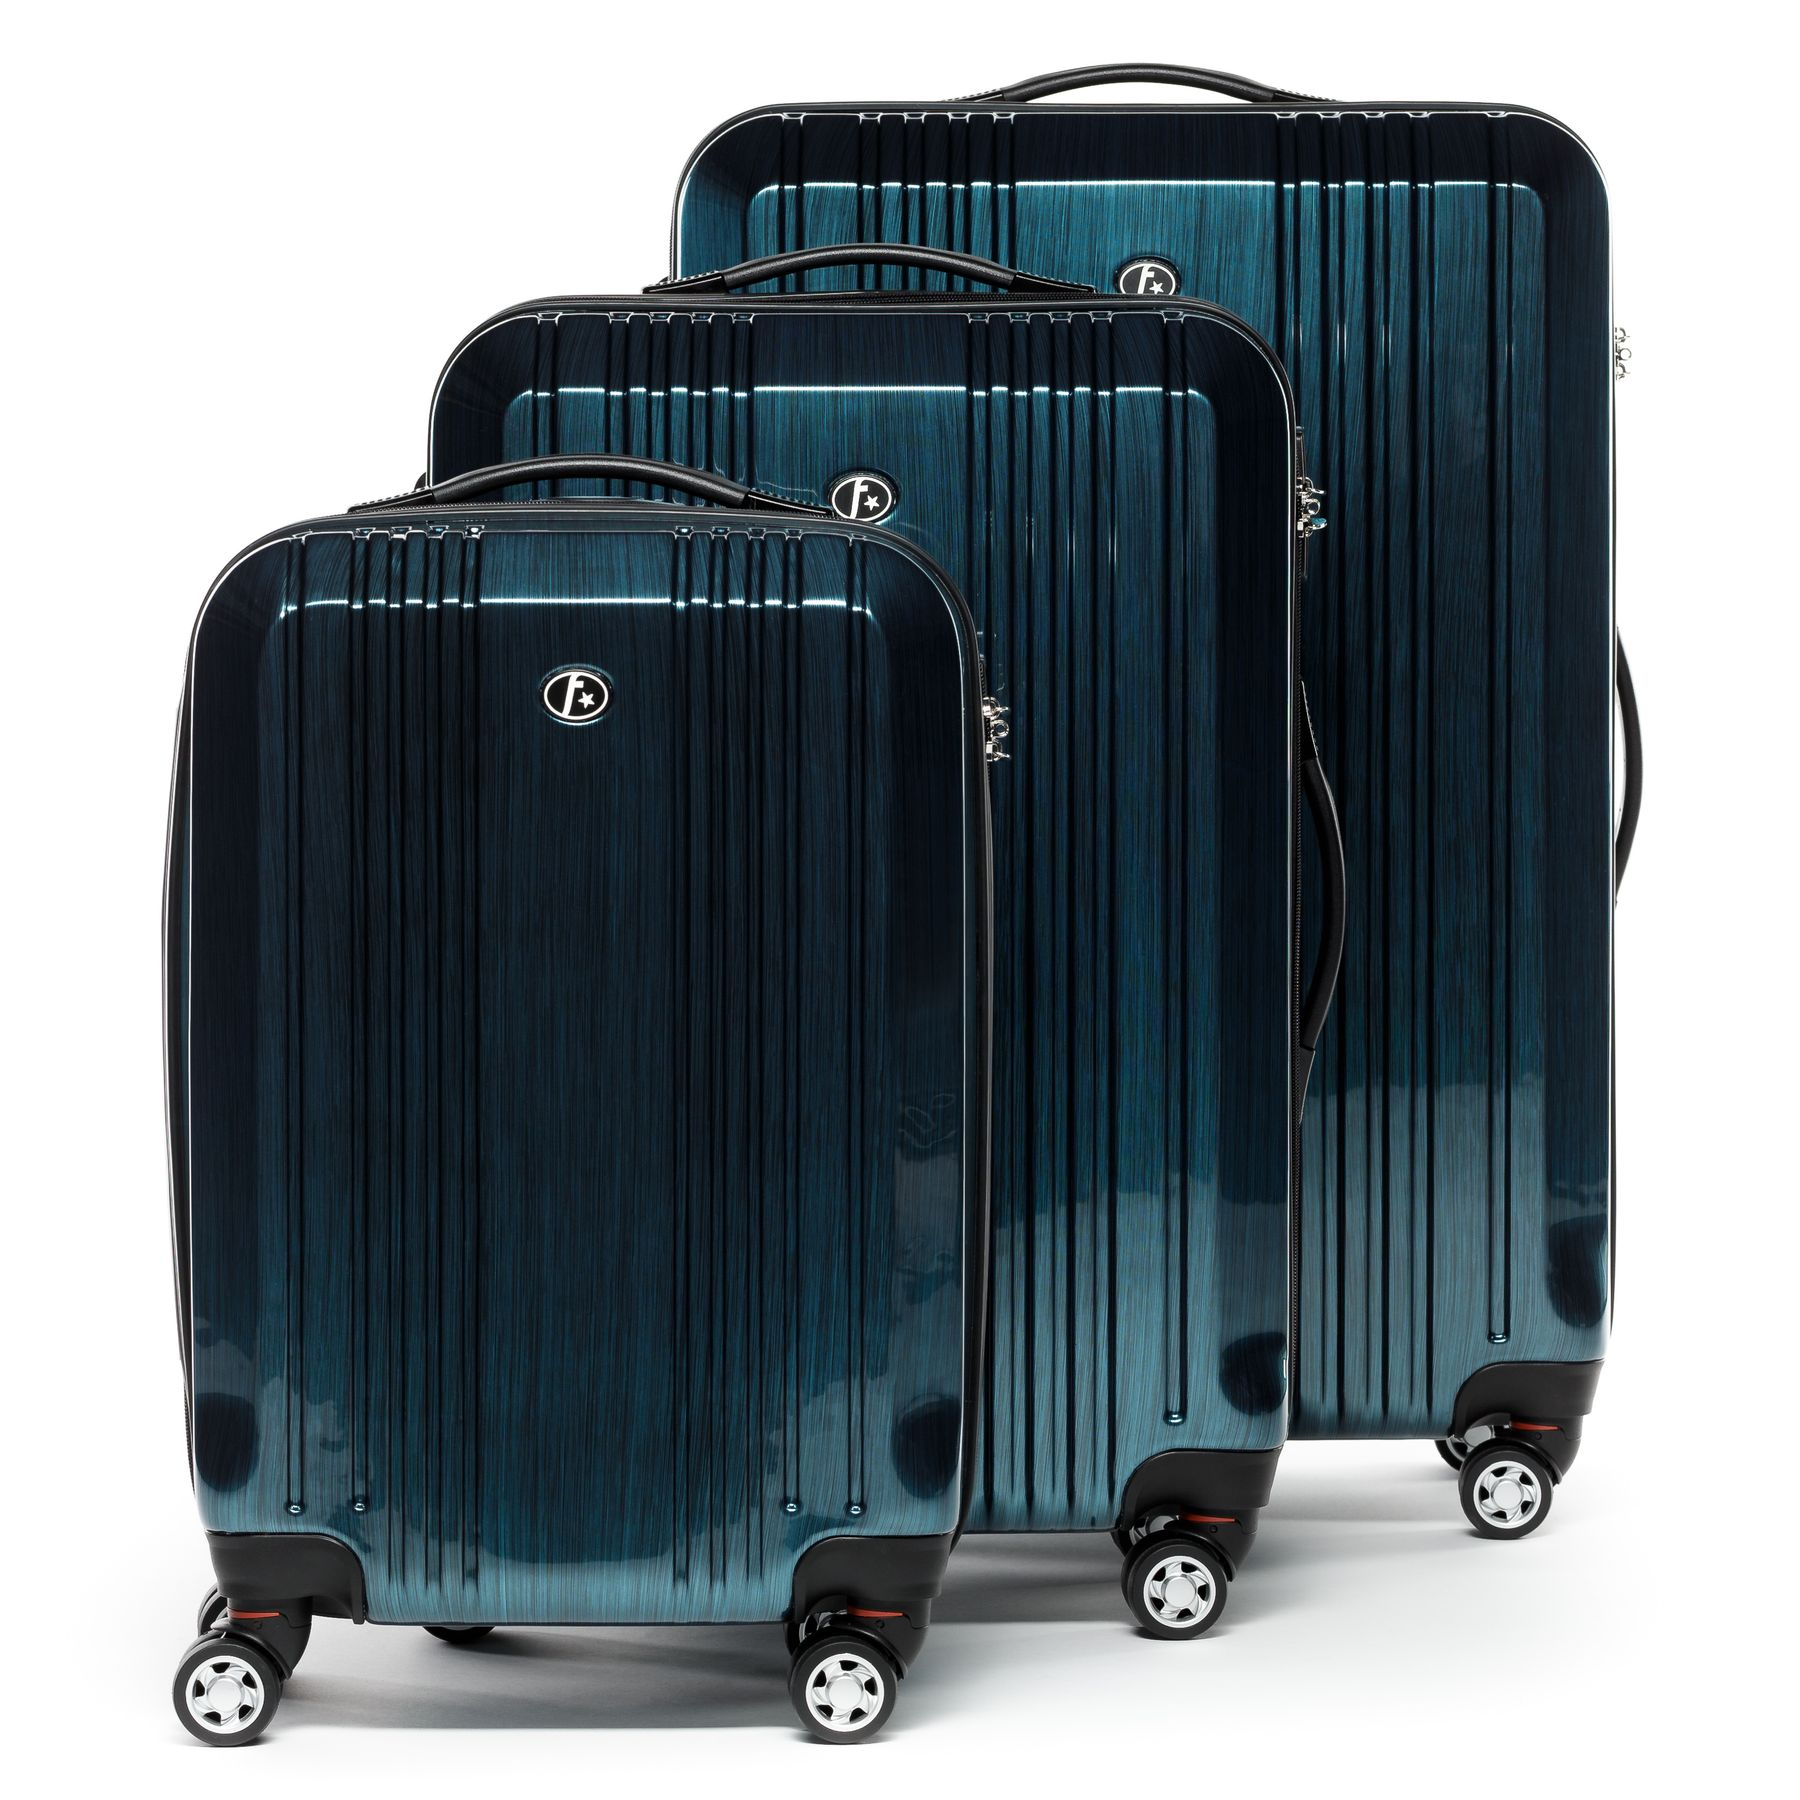 1e1b239cc FERGÉ luggage set 3 piece Polycarbonate CANNES petrol hard shell travel  trolley suitcase set 4 twin spinner wheels Luggage